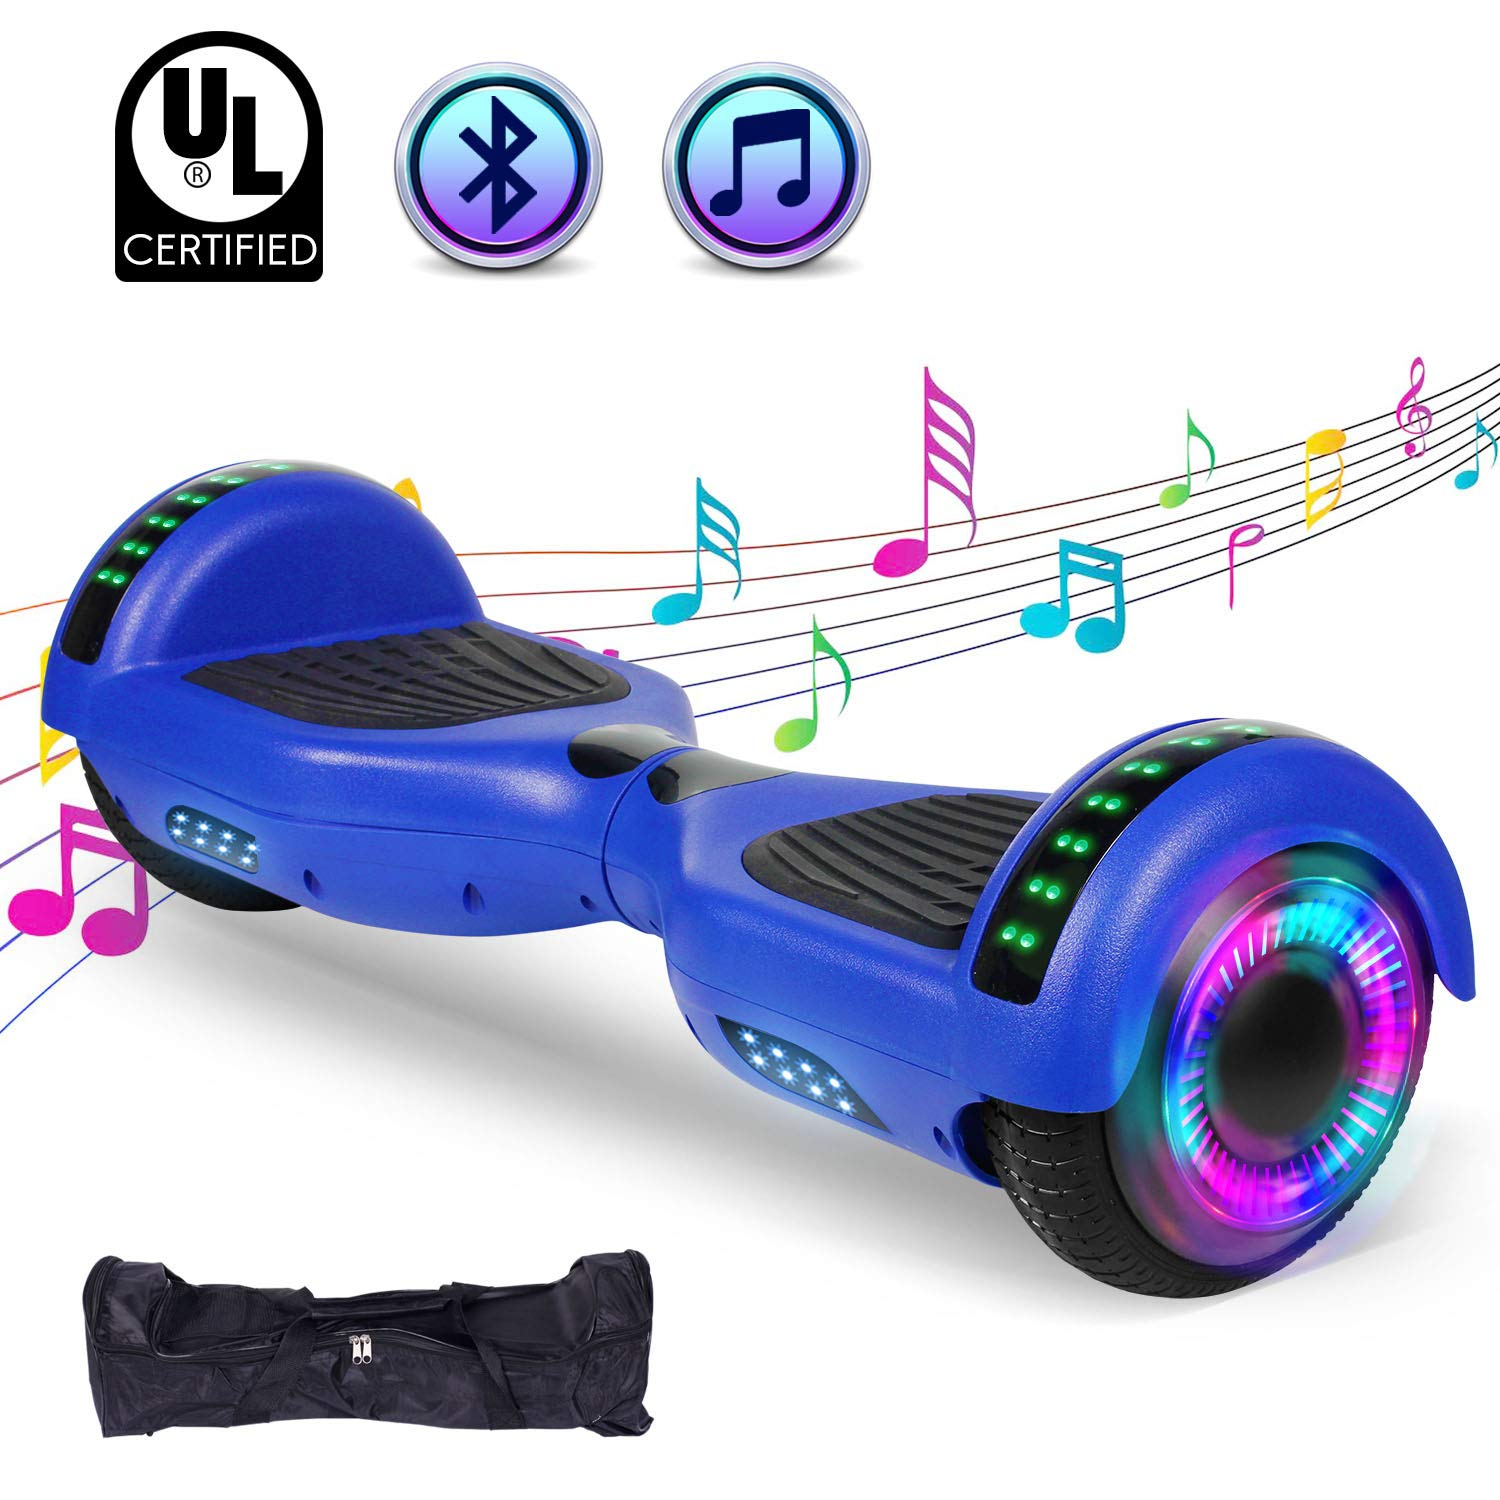 """SWEETBUY Hoverboard UL 2272 Certified 6.5"""" Two-Wheel Bluetooth Self Balancing Electric Scooter with LED Light Flash Lights Wheels Blue (Free Carry Bag)"""